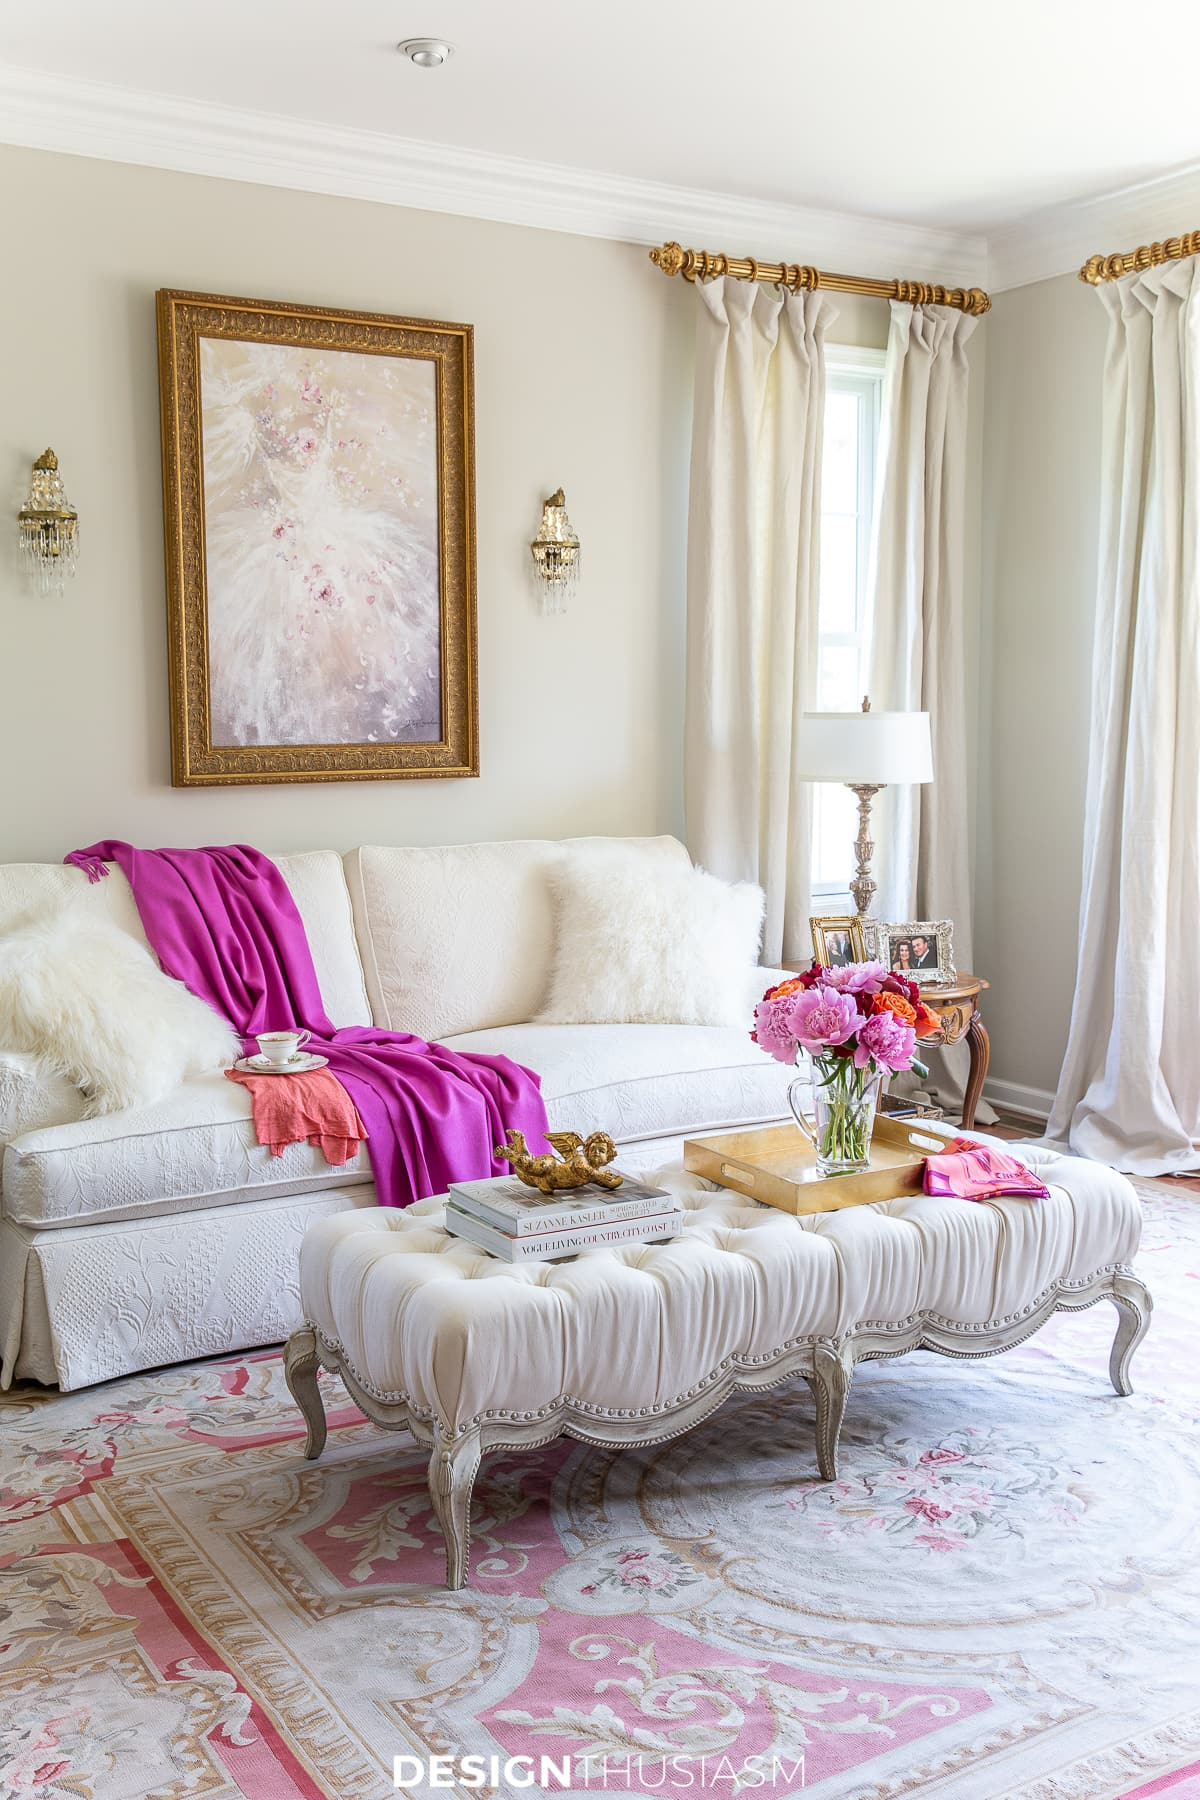 Summer Decorating: How to Prepare Your Home for Summer